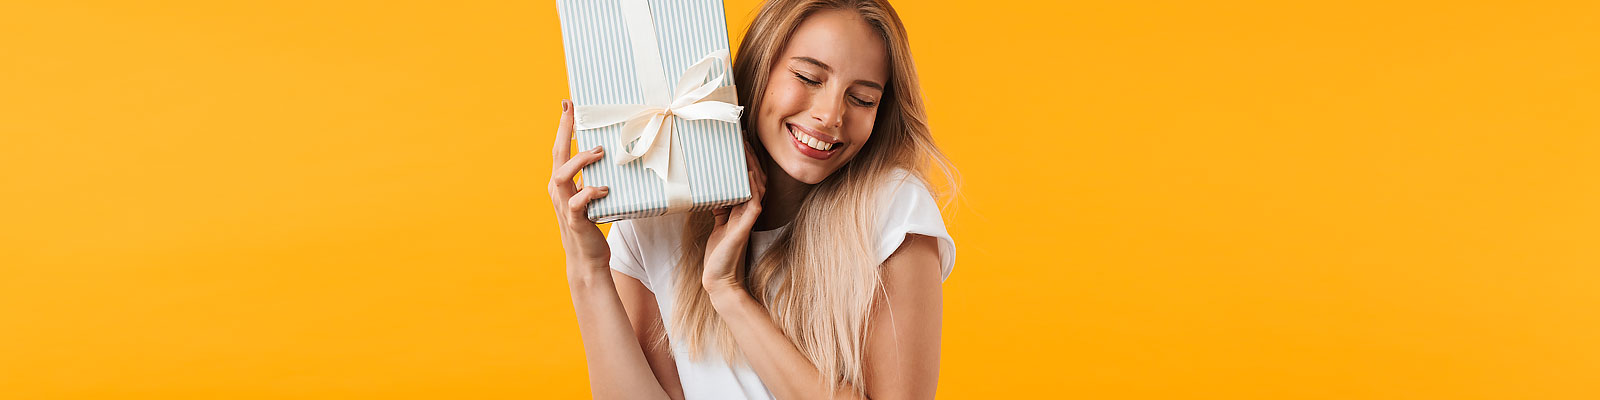 Experience Gifts for Her